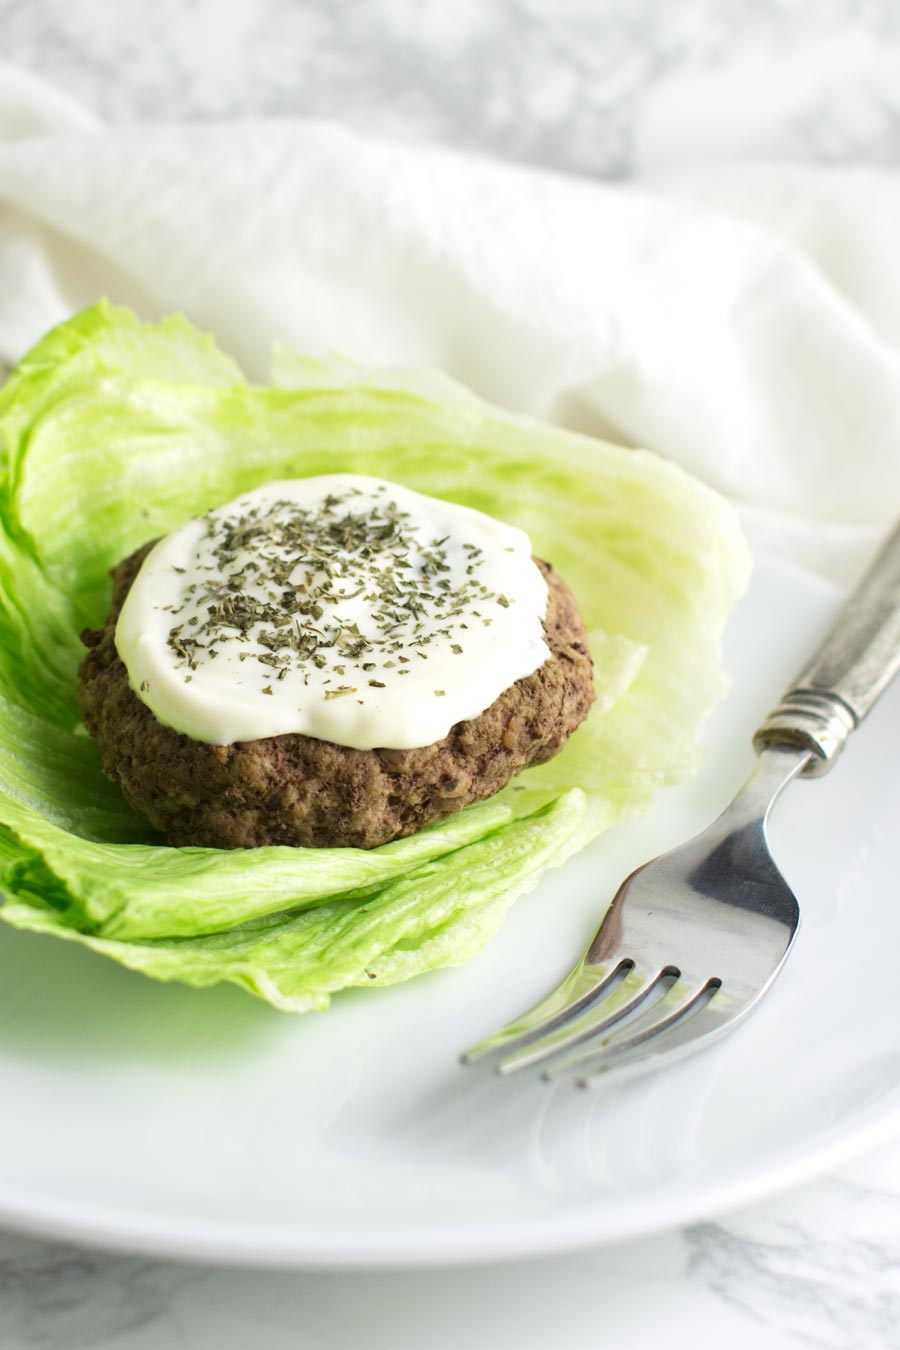 Moroccan Burger recipe from acleanplate.com #paleo #aip #glutenfree